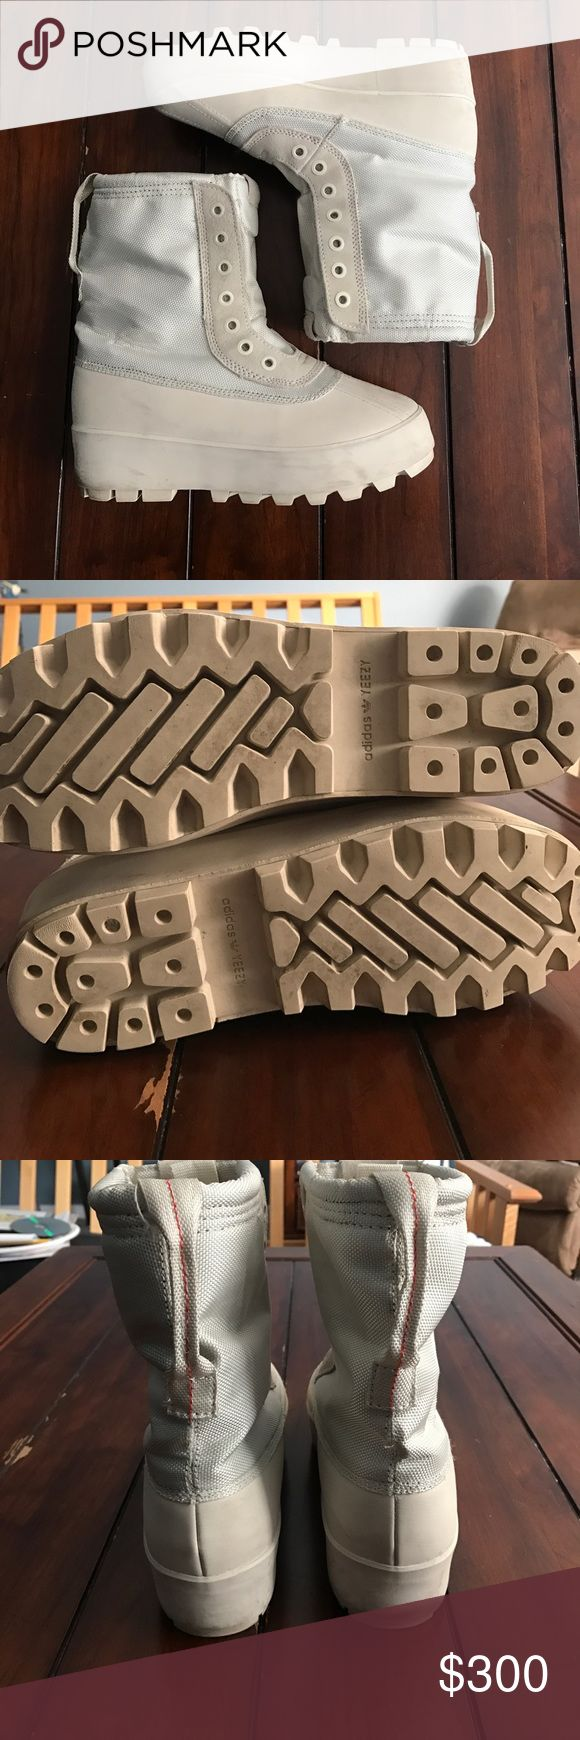 Adidas Yeezy 950 Very good condition with minimal wear throughout the shoe. They are 100% authentic and have them Legit Checked by two reliable sources. They are missing the laces, and the right insole, which is reflected in the asking price! Feel free to ask questions and make offers Shoes